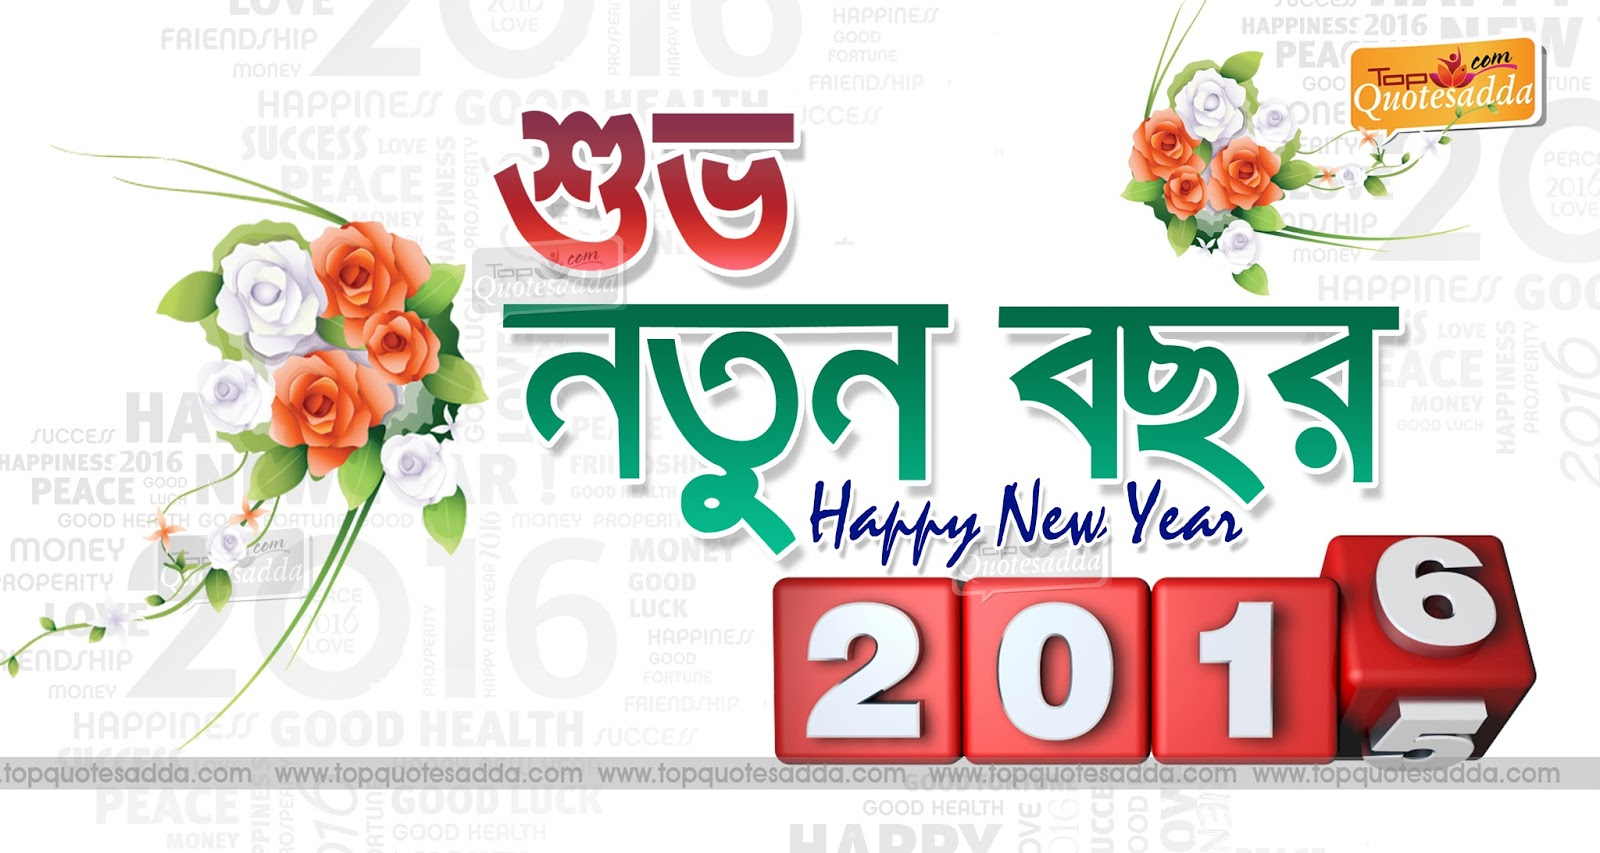 Happy New Year Bengali Wishes Quotes Hd Wallpapers Topquotesadda